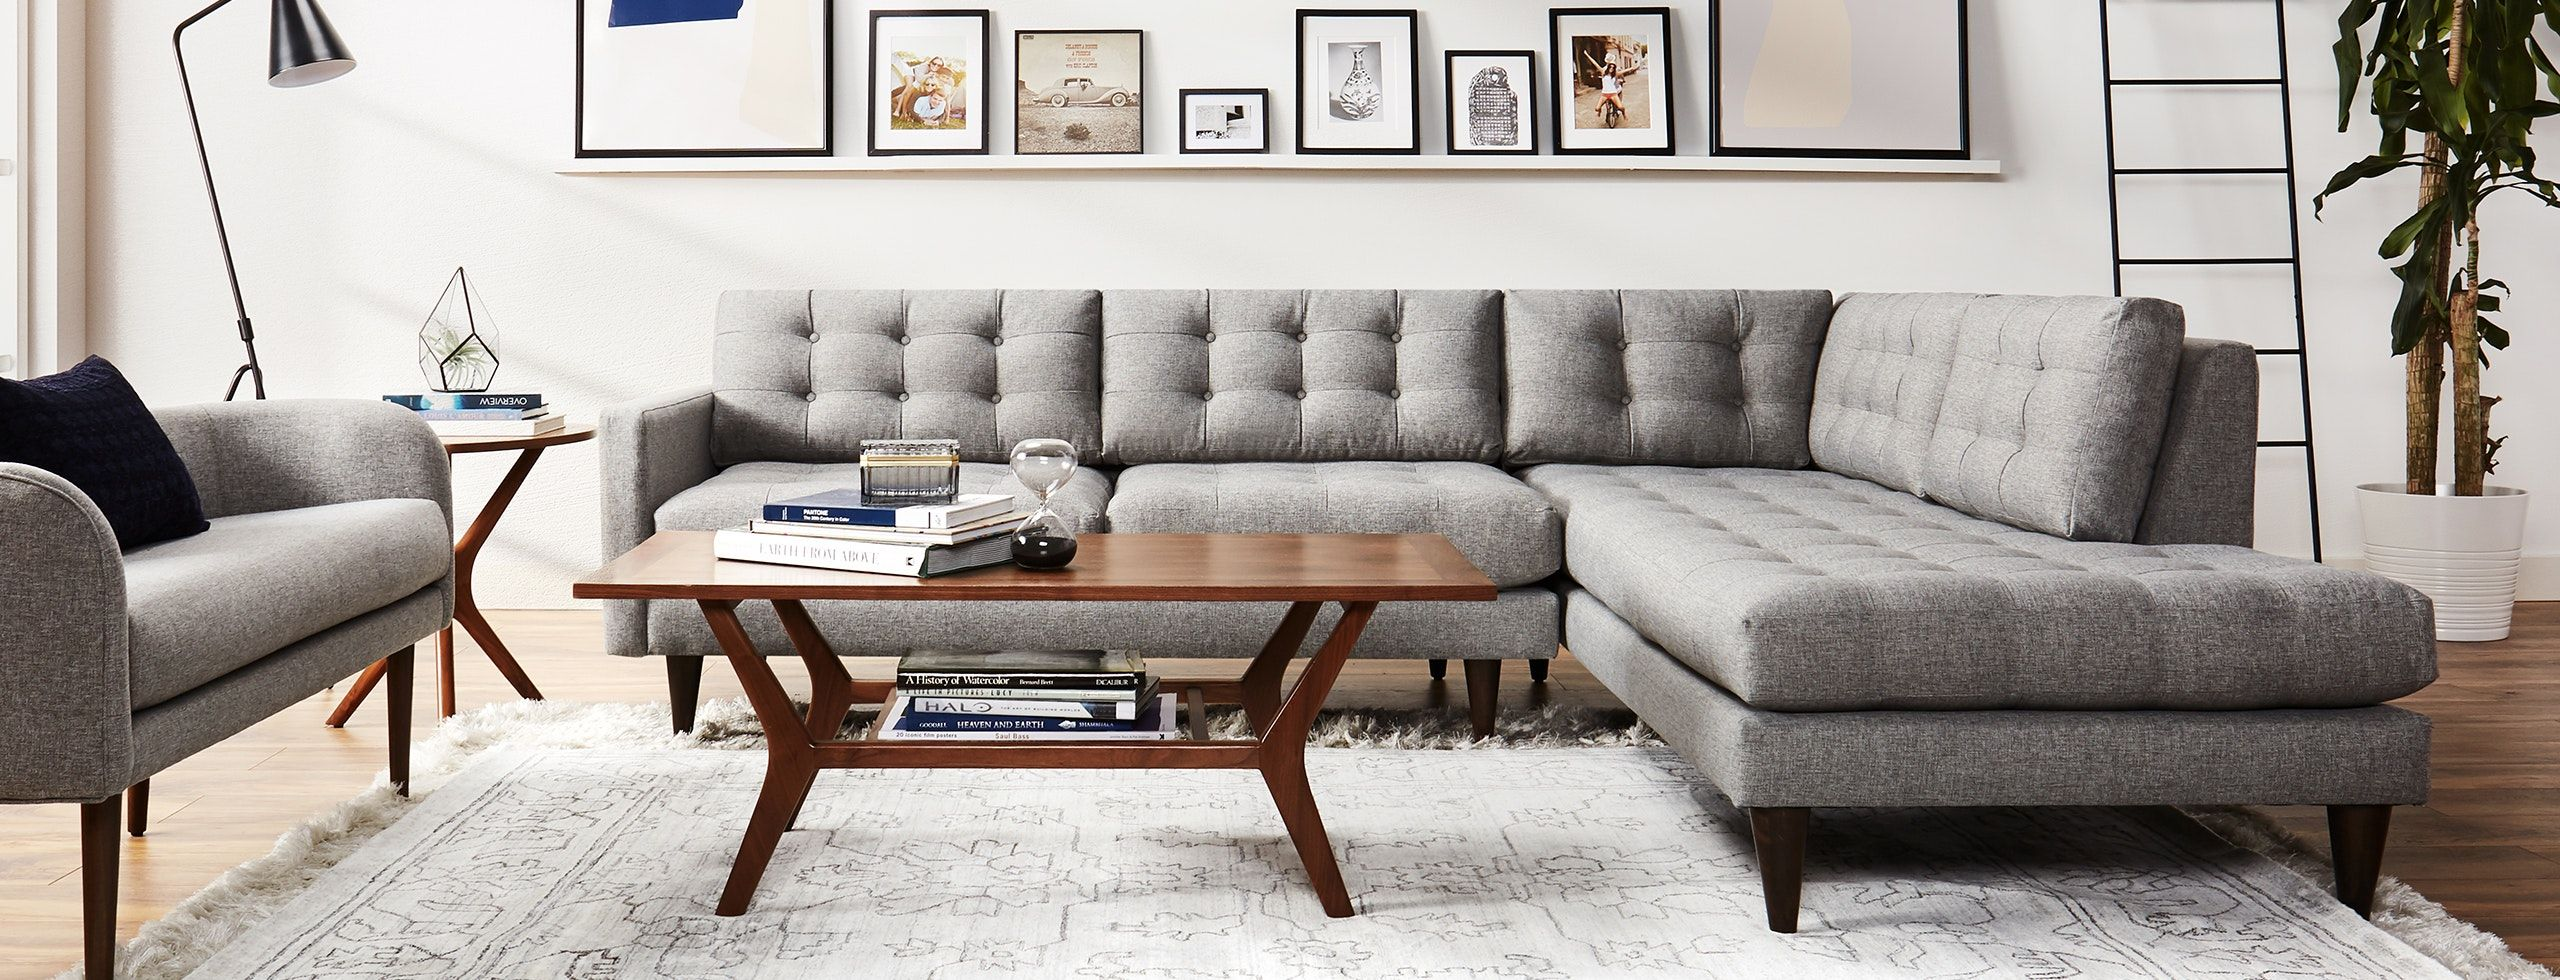 Awe Inspiring Cullen Coffee Table In 2019 Furniture Finds Tufted Creativecarmelina Interior Chair Design Creativecarmelinacom